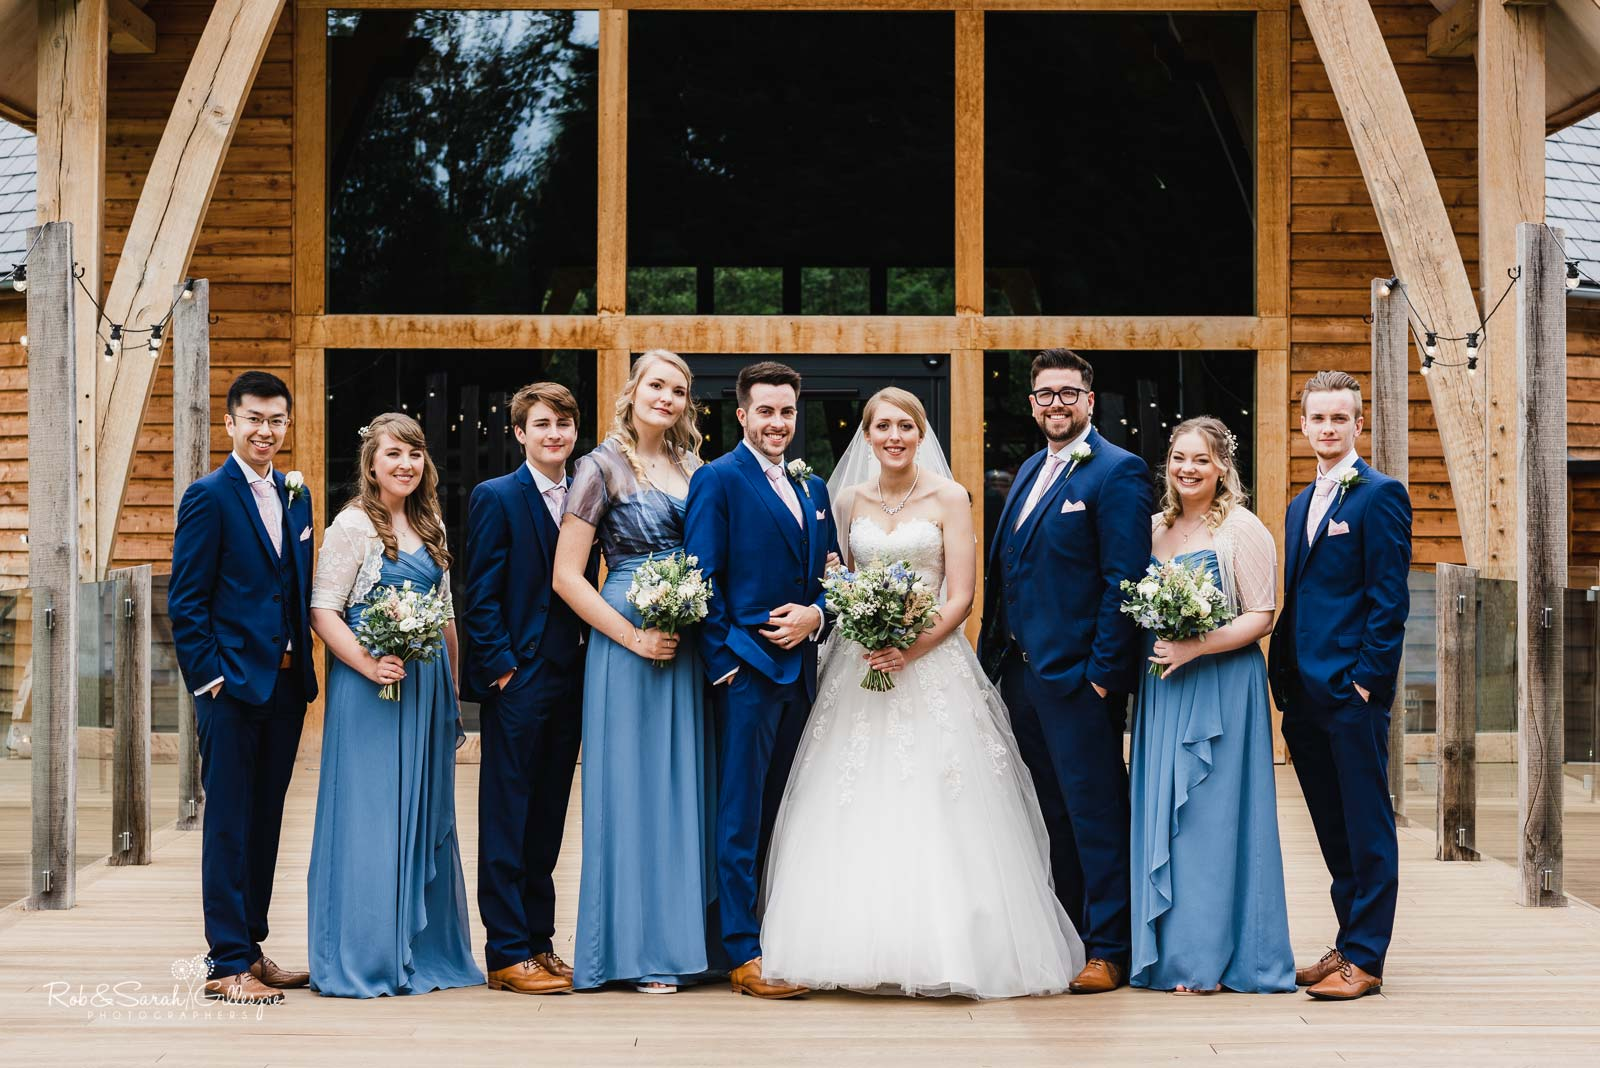 Group photo of bridal party at The Mill Barns in Shropshire